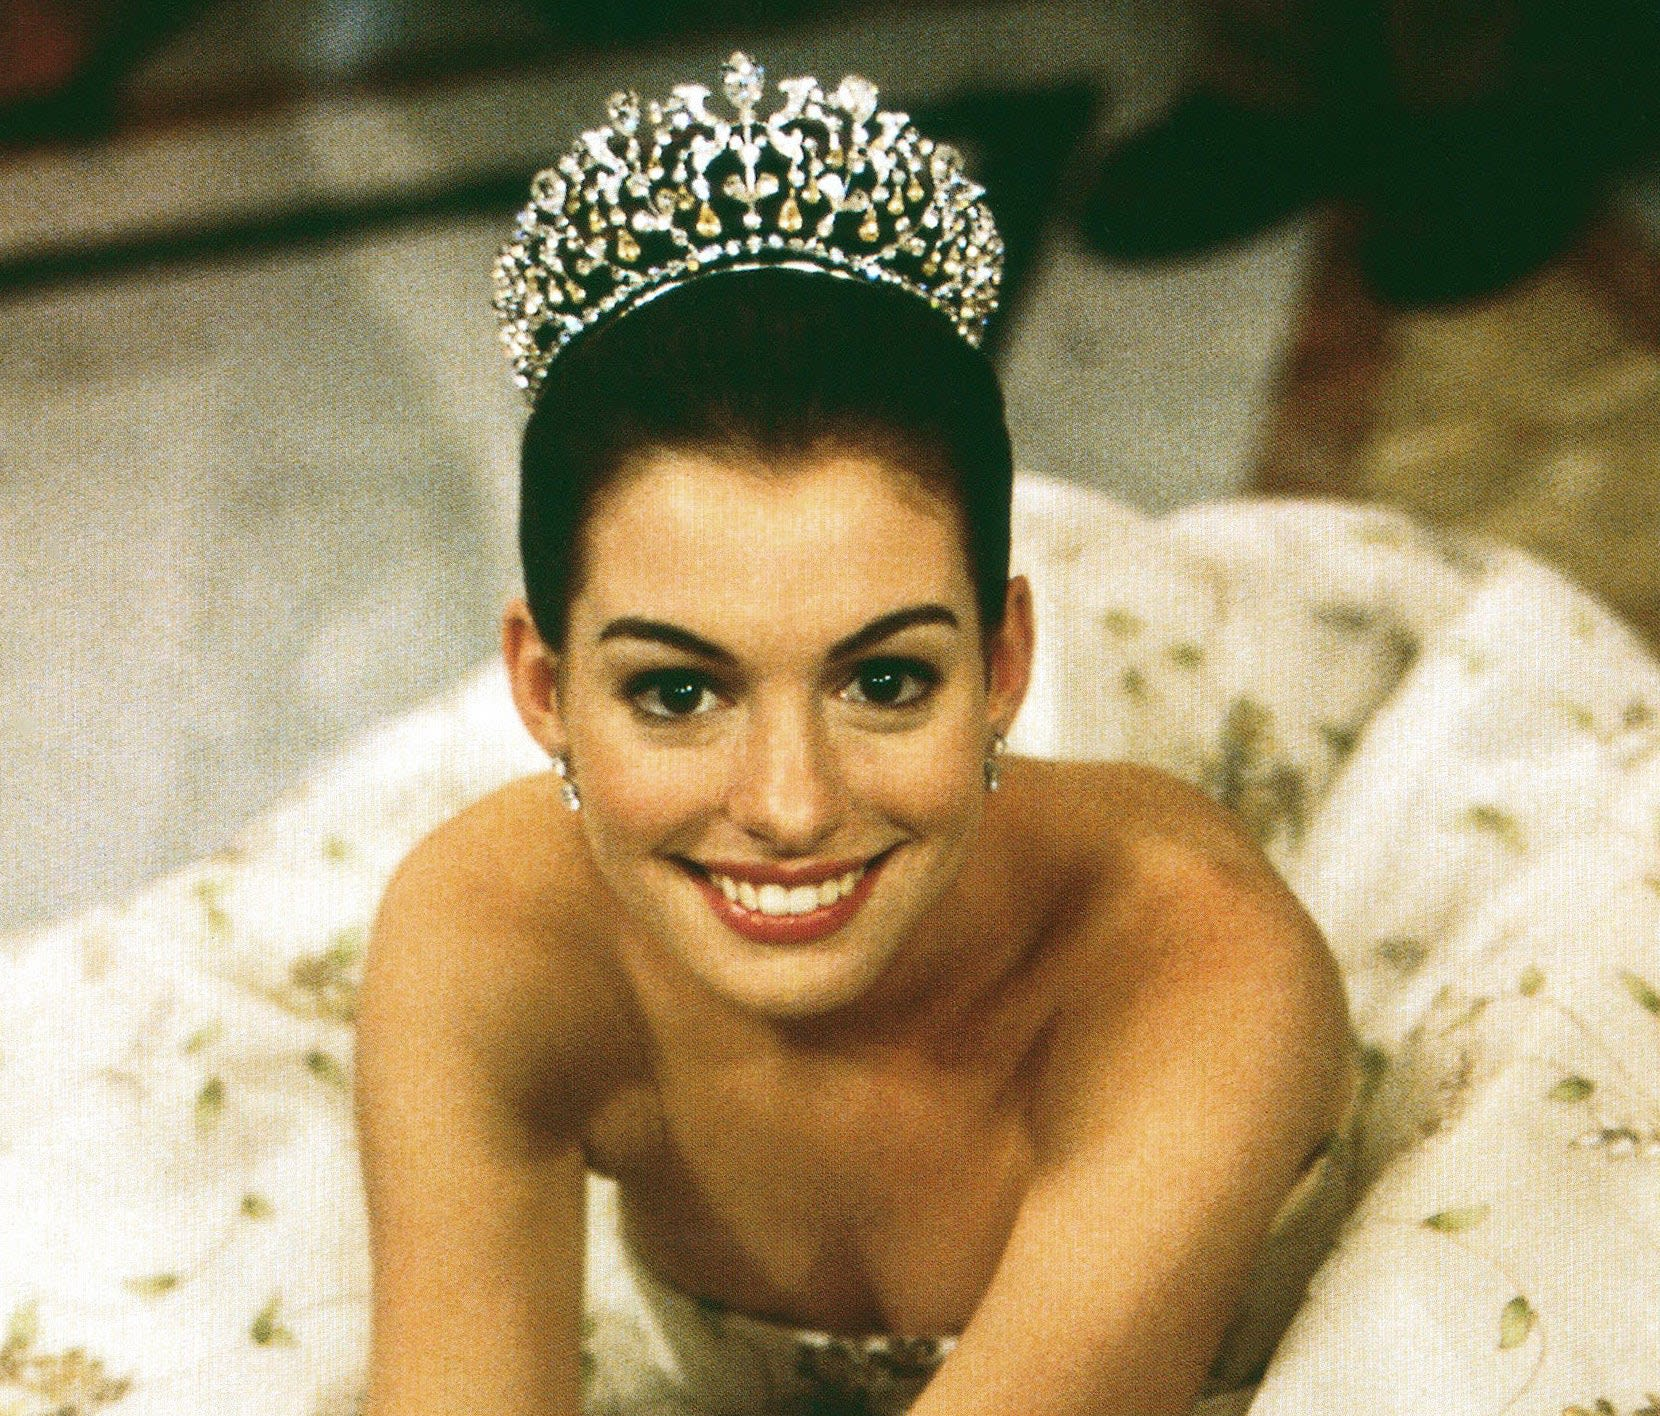 Mia sitting while wearing a strapless ball gown and an intricate tiara